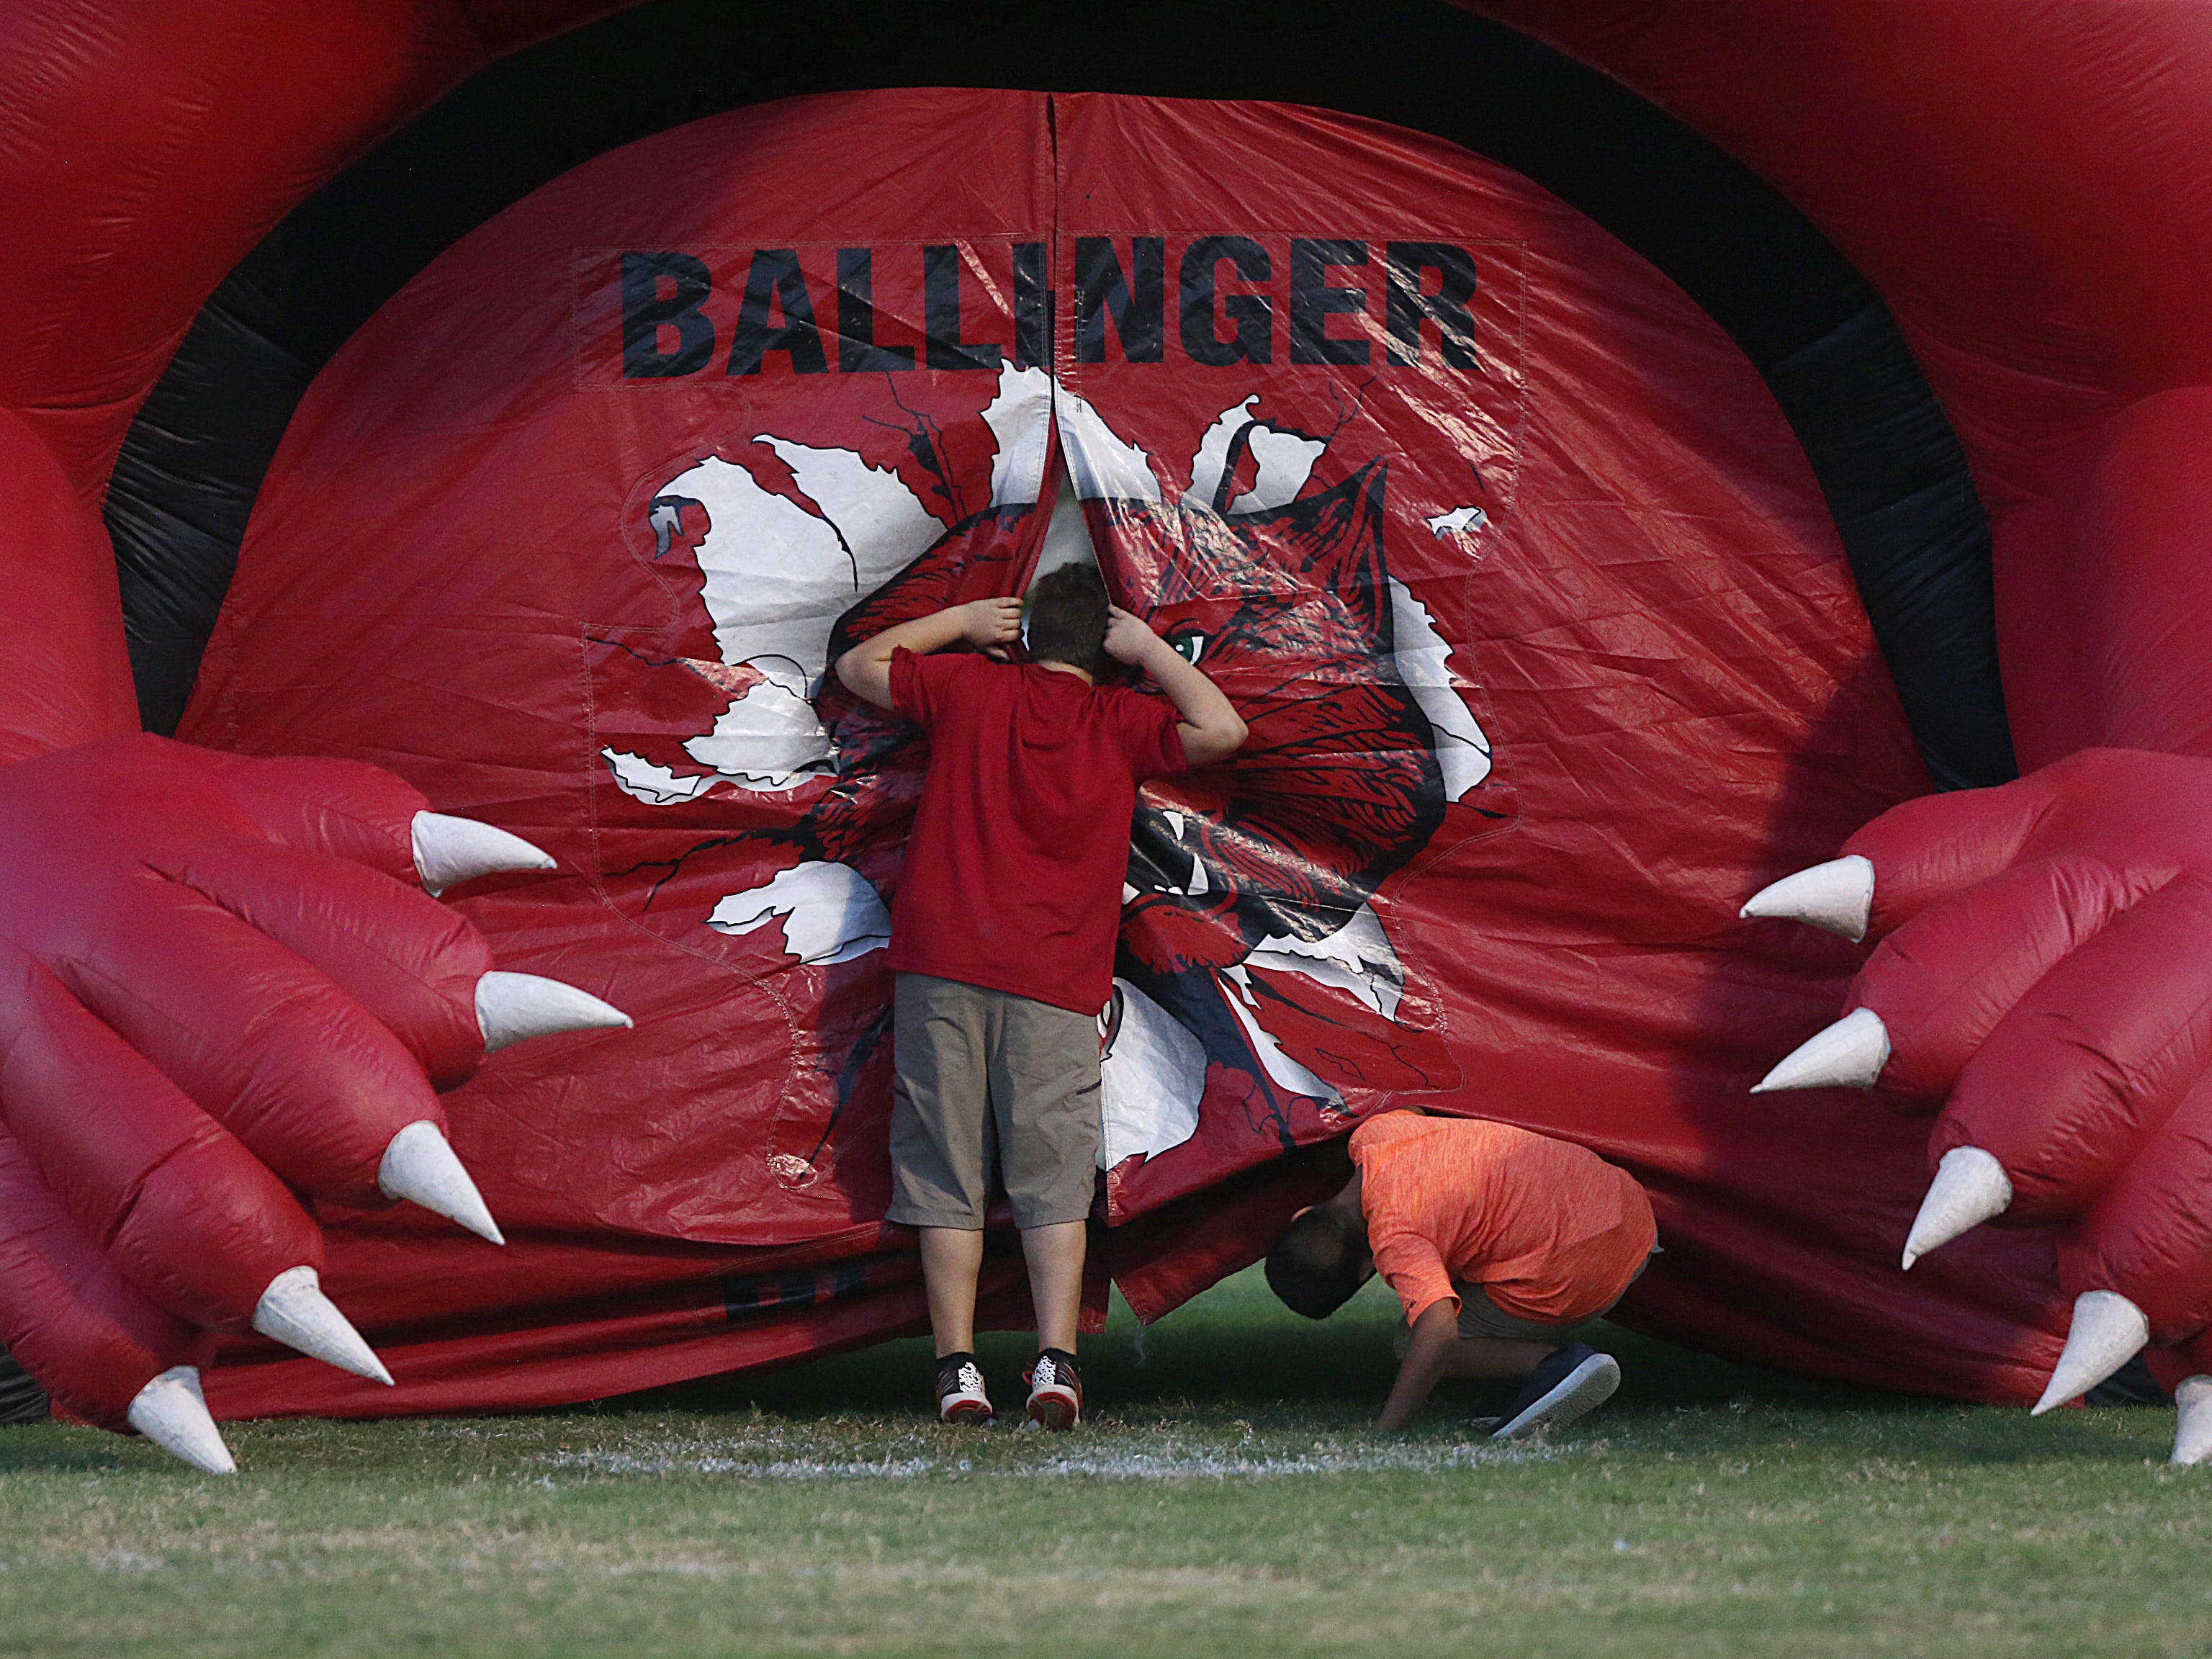 Kids take a sneak peek inside the Ballinger's inflatable before the game Friday, Oct. 5, 2018, between Ballinger and Anson.